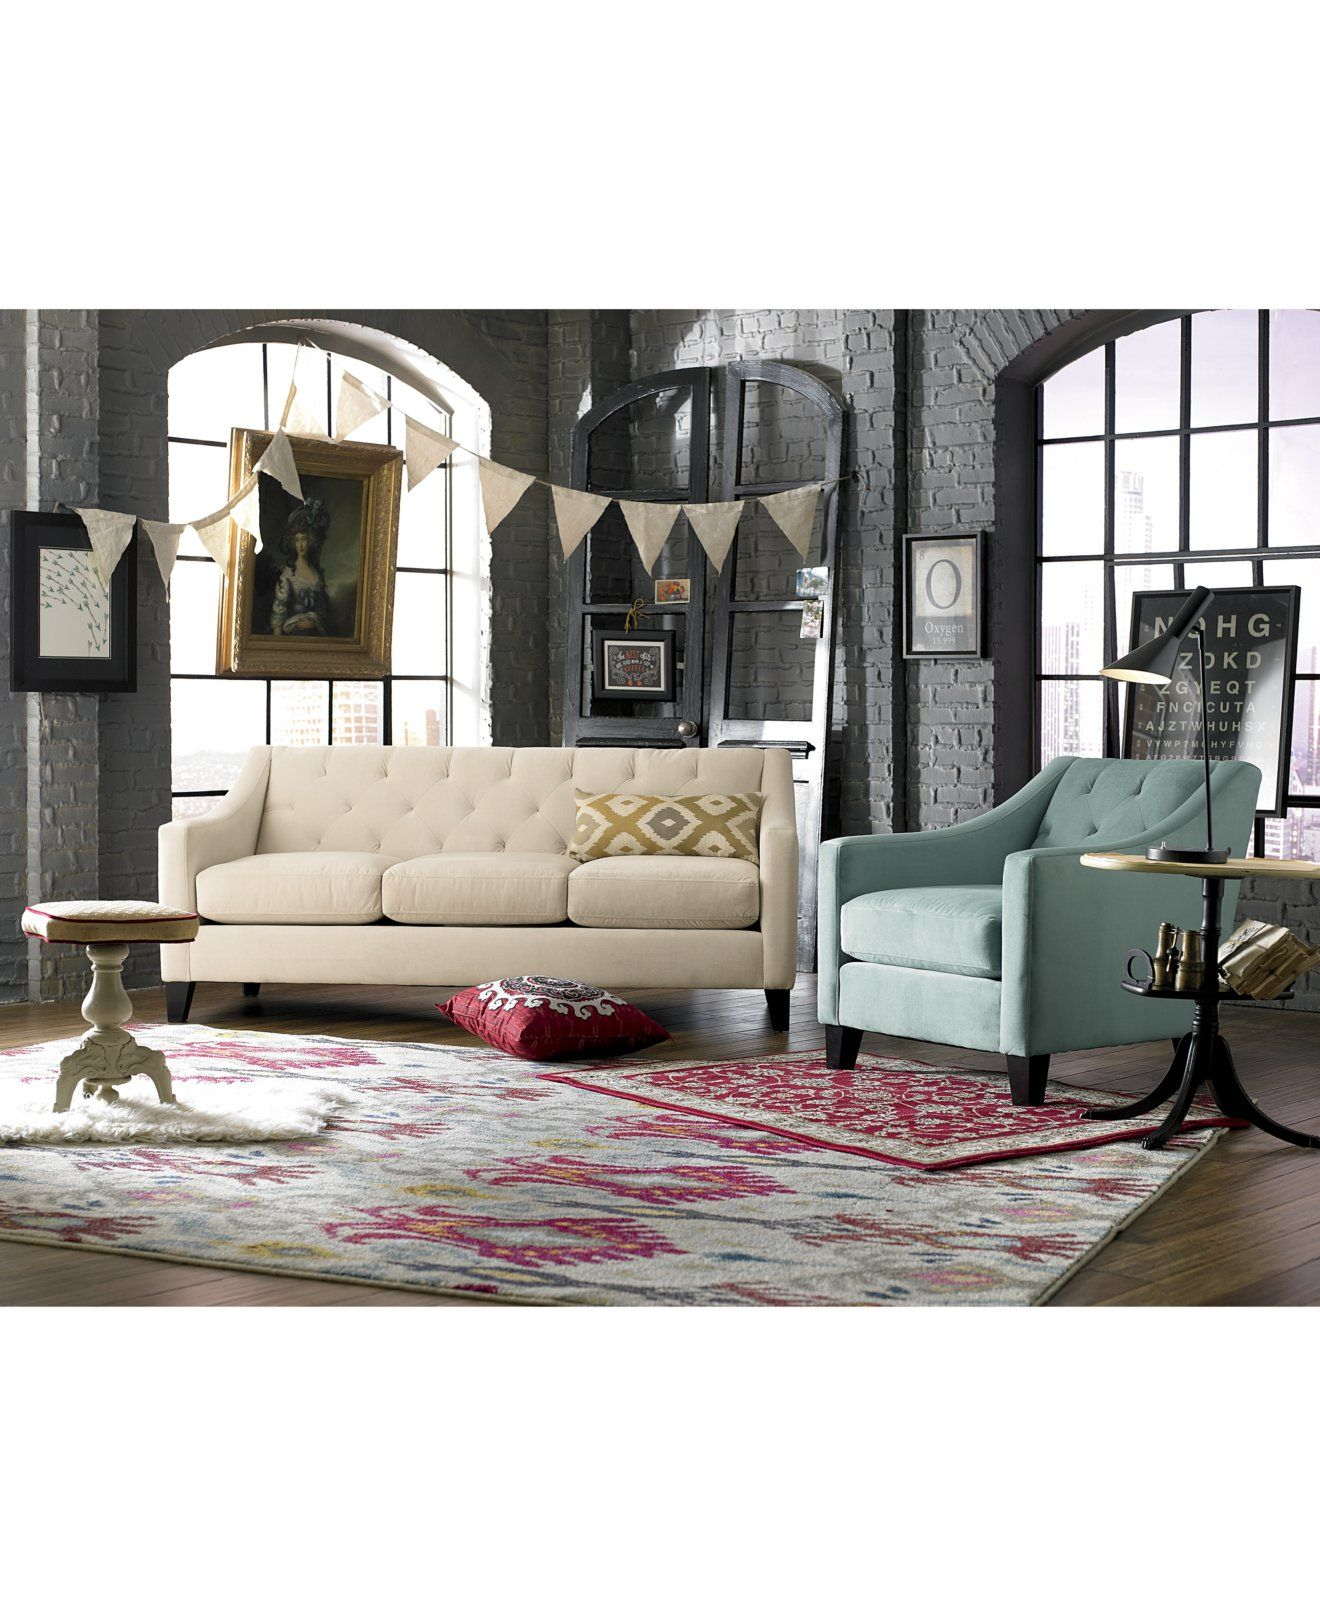 Chloe On Tufted Velvet Sofa Faux Leather Beds With Storage Living Room Furniture Collection